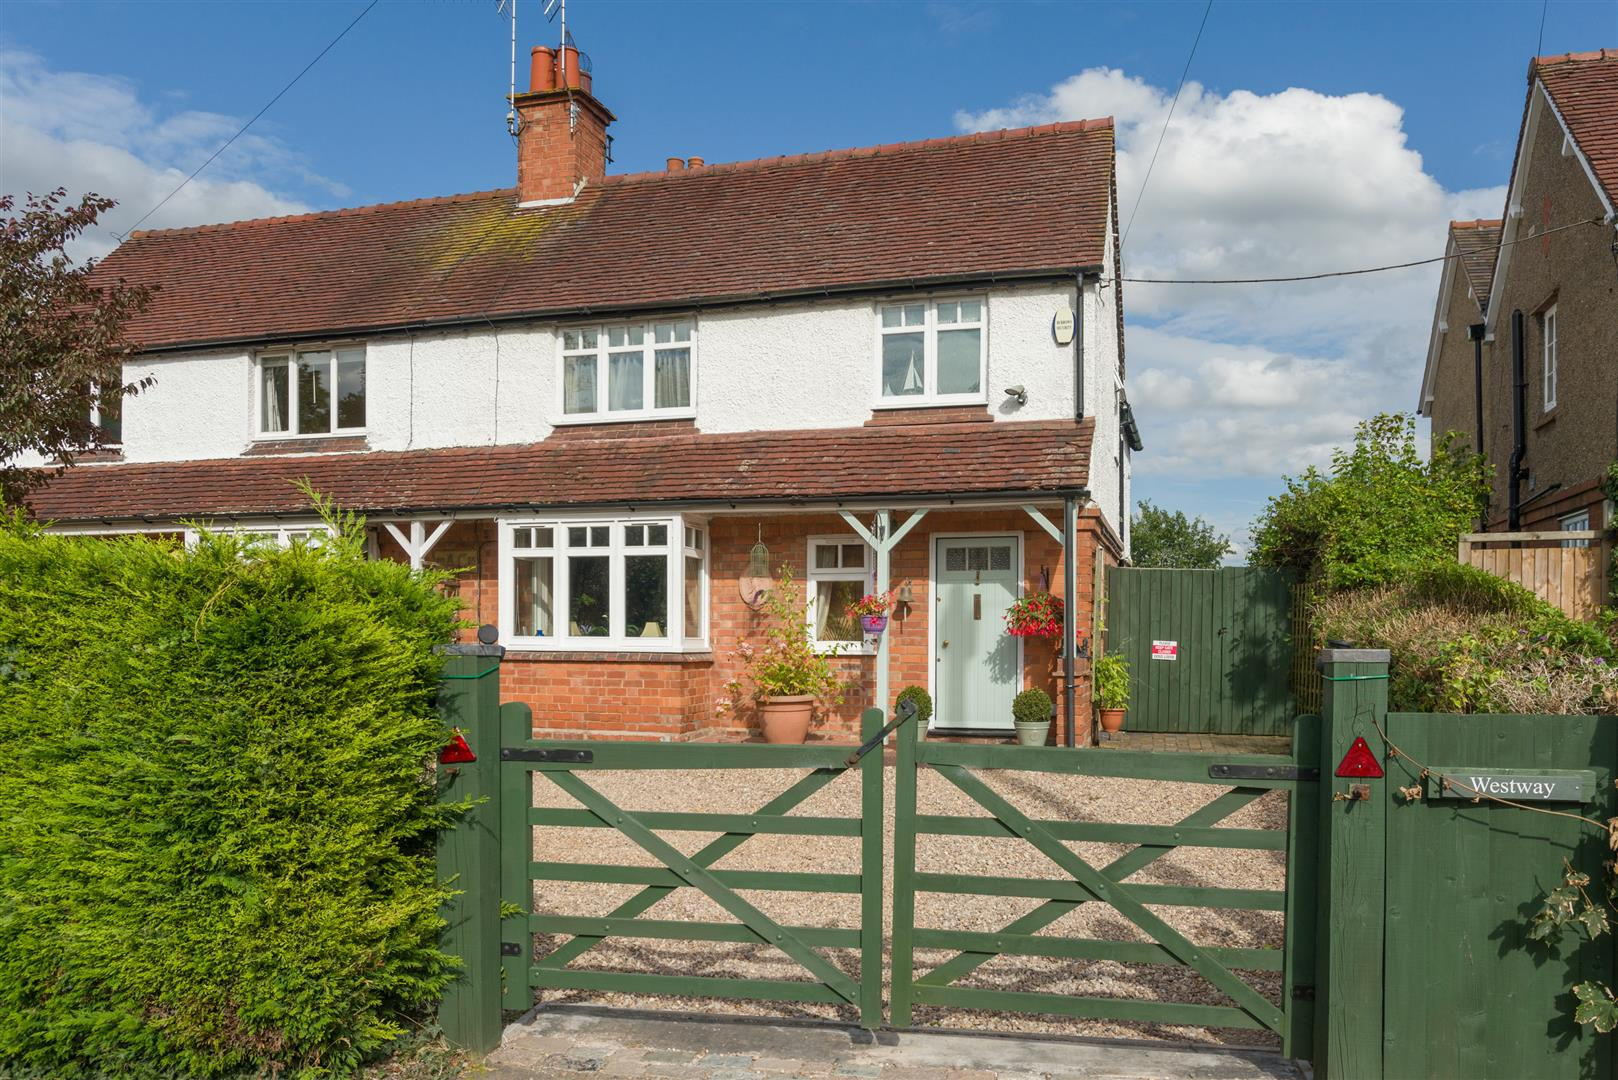 3 Bedrooms Semi Detached House for sale in Wolverton, Snitterfield, Stratford upon Avon